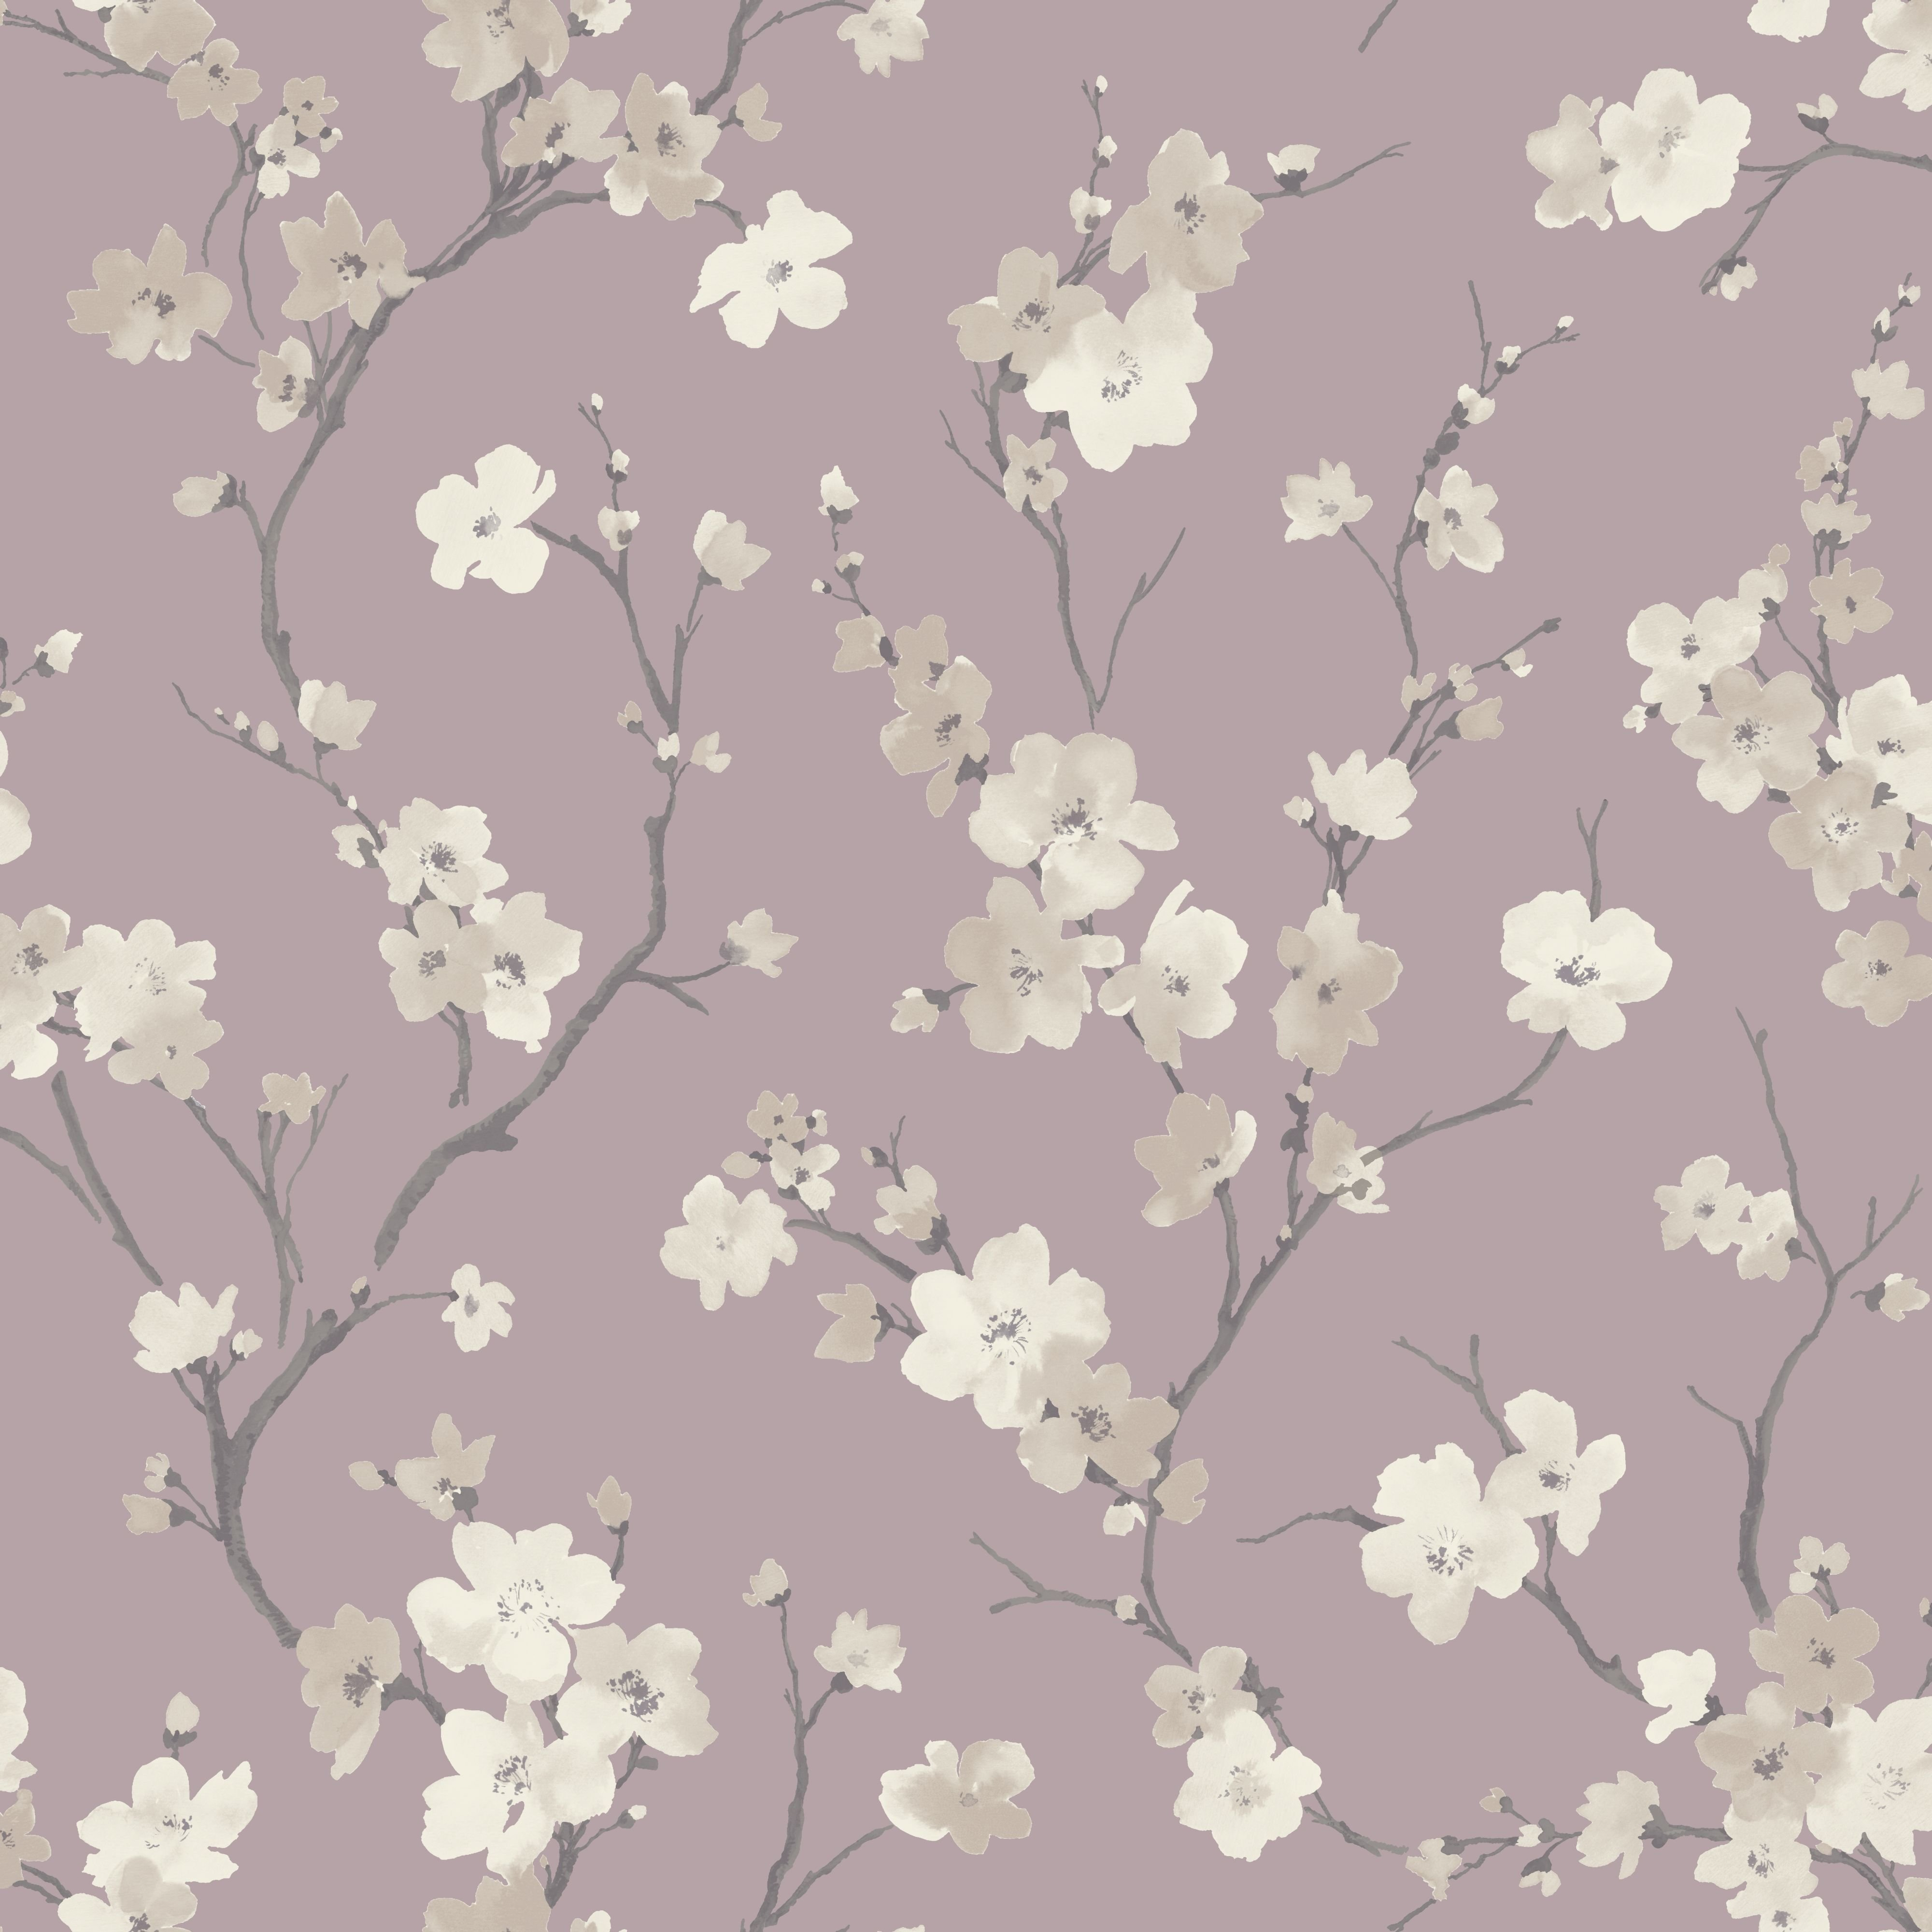 Best Blossom Wisteria Floral Glitter Wallpaper Departments Diy At B Q Miah S Bedroom Ideas In With Pictures